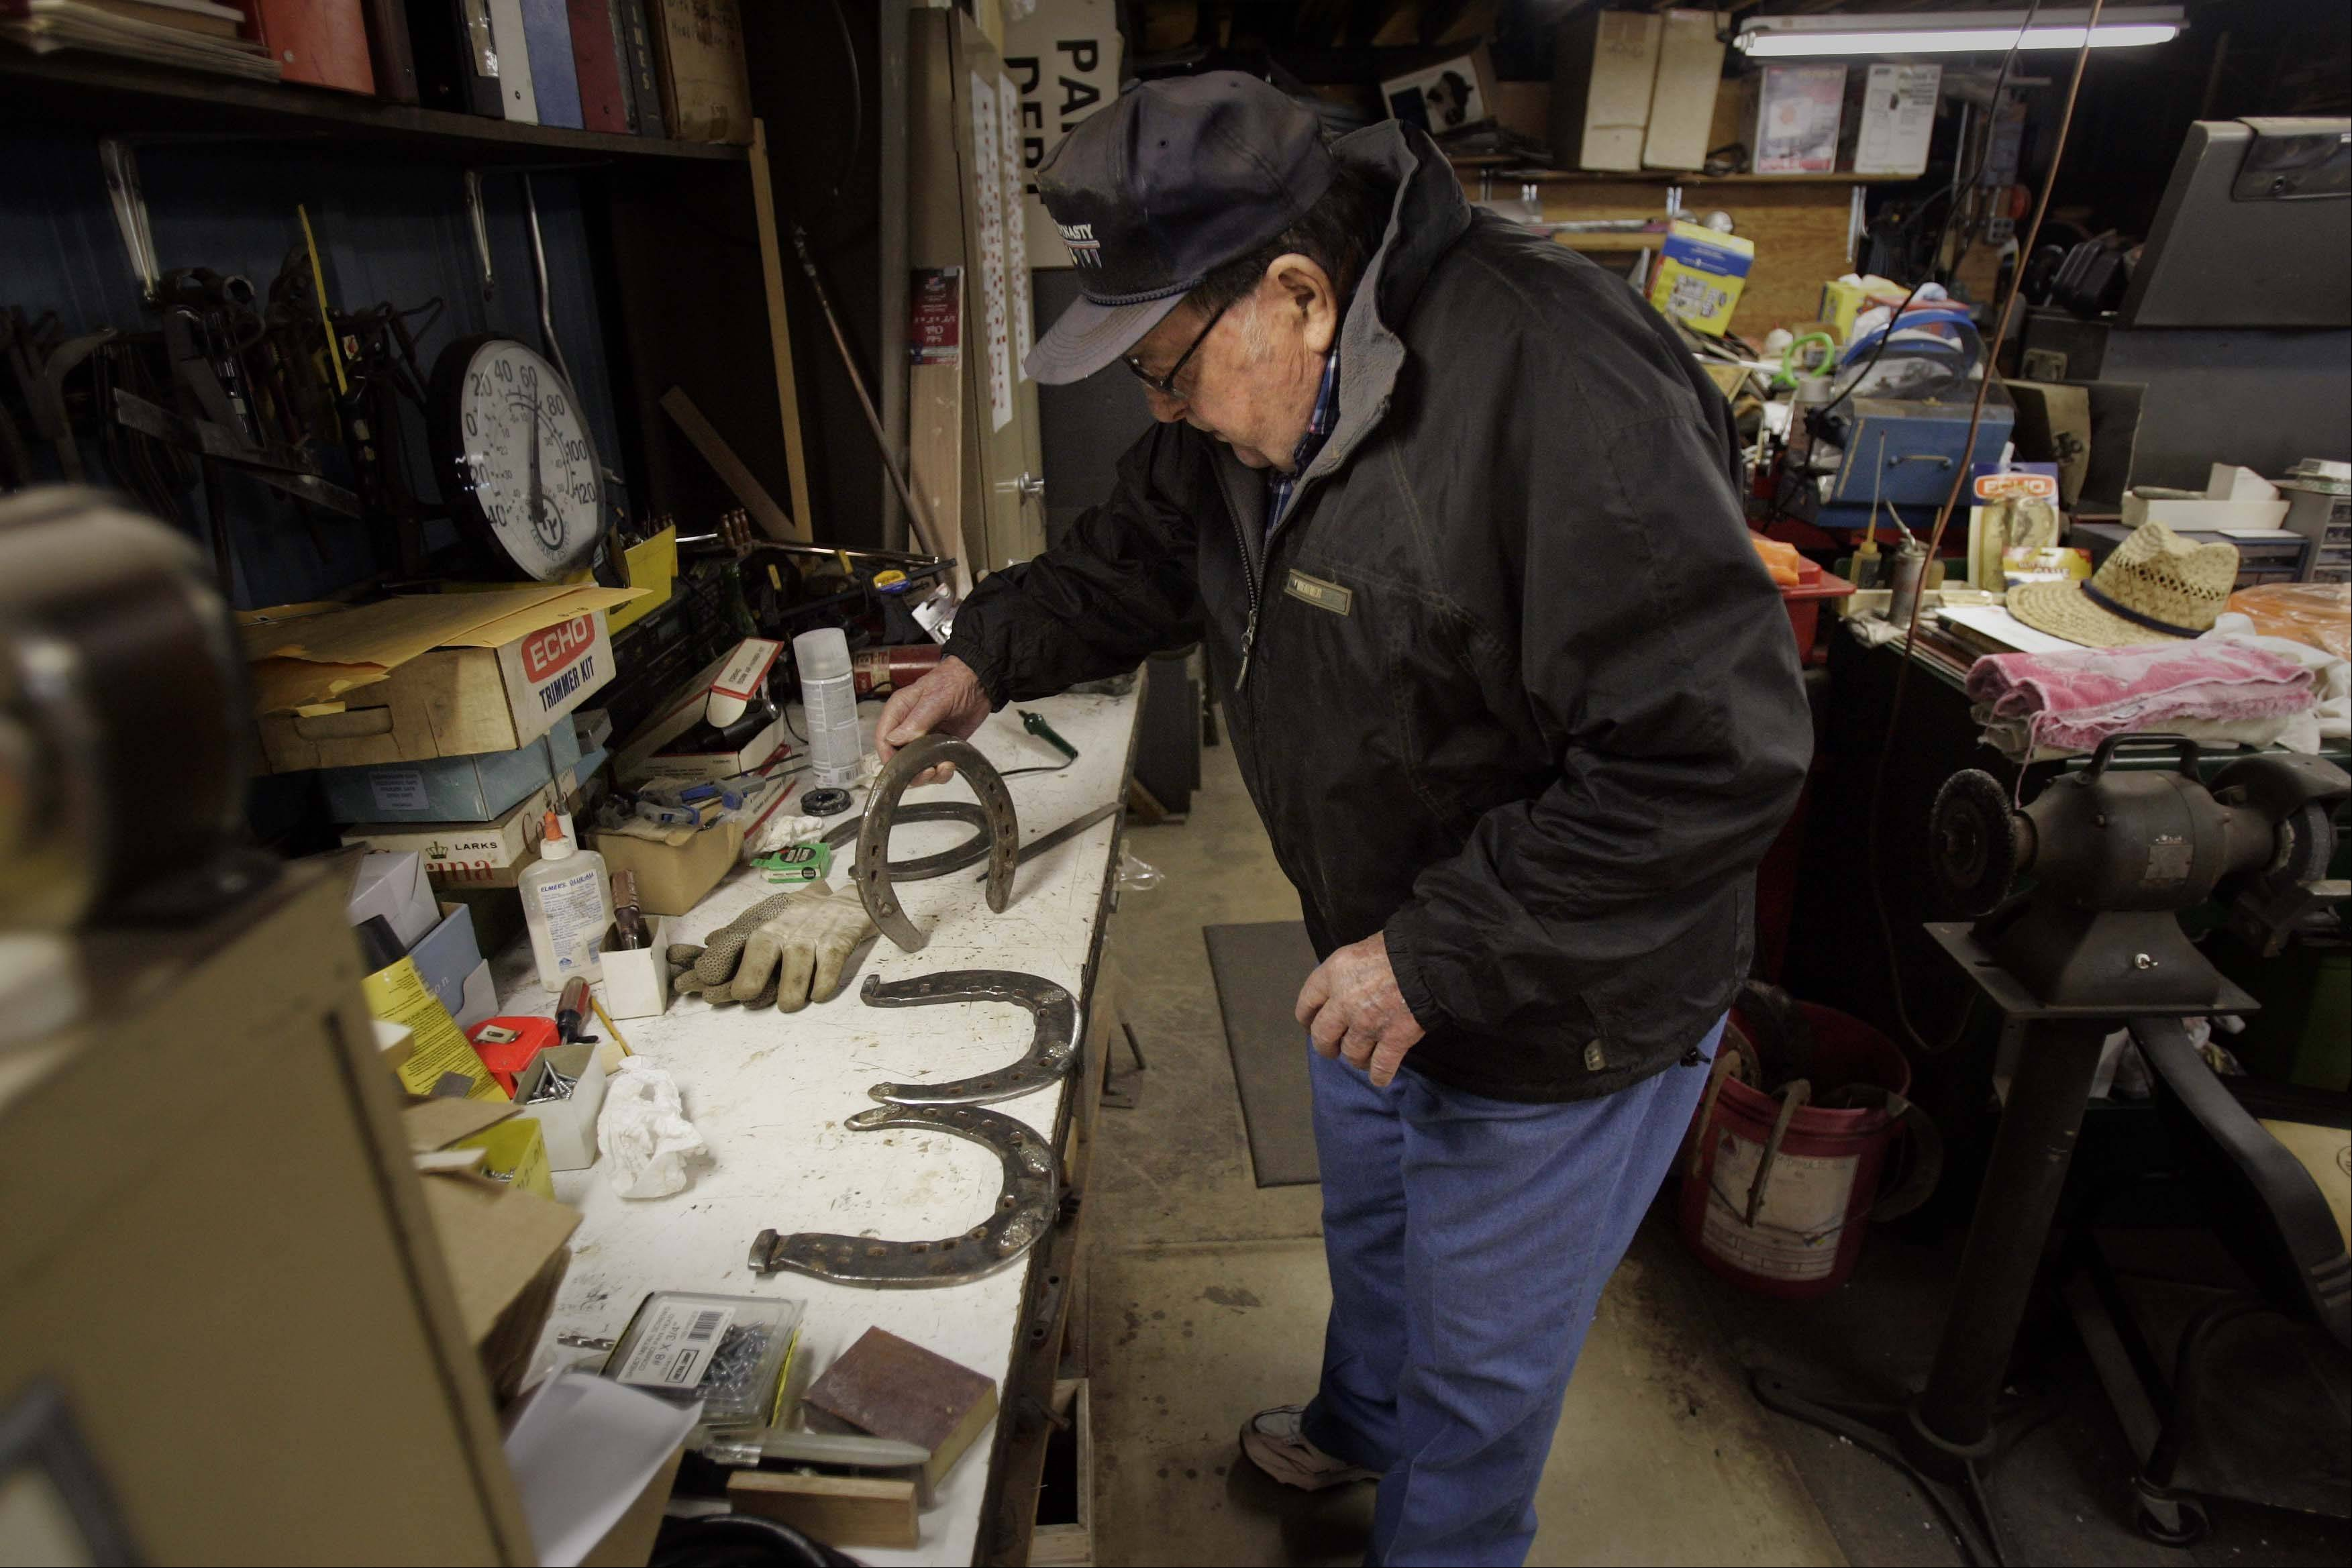 Melvin Peterson, 91, of St. Charles, works almost daily at the Wasco Blacksmith Shop, and here spends time cleaning special horseshoes that were used on Clydesdale horses.